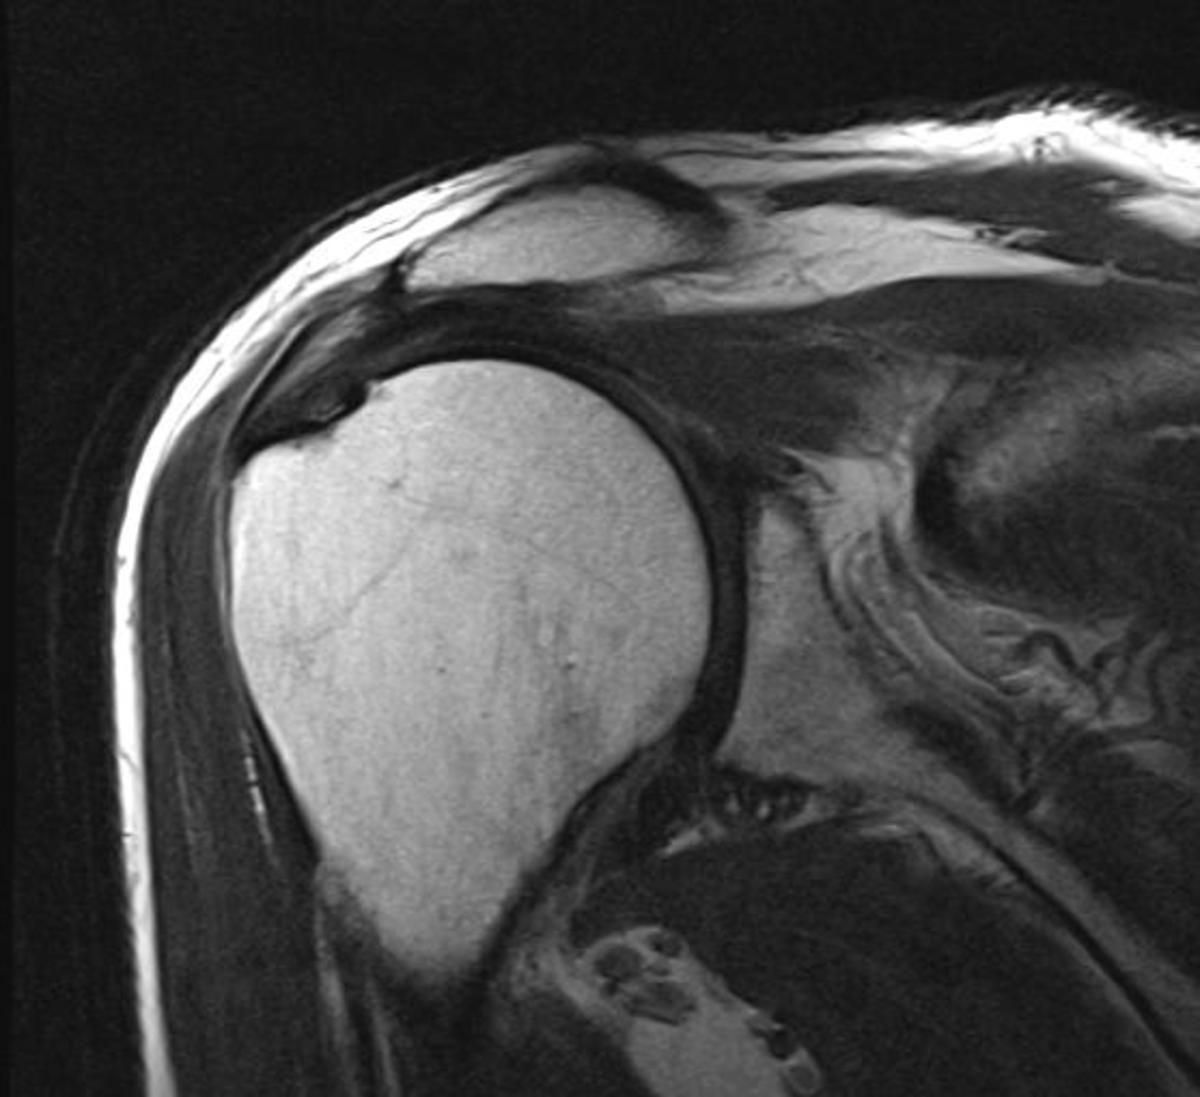 One section of my MRI taken in 2011